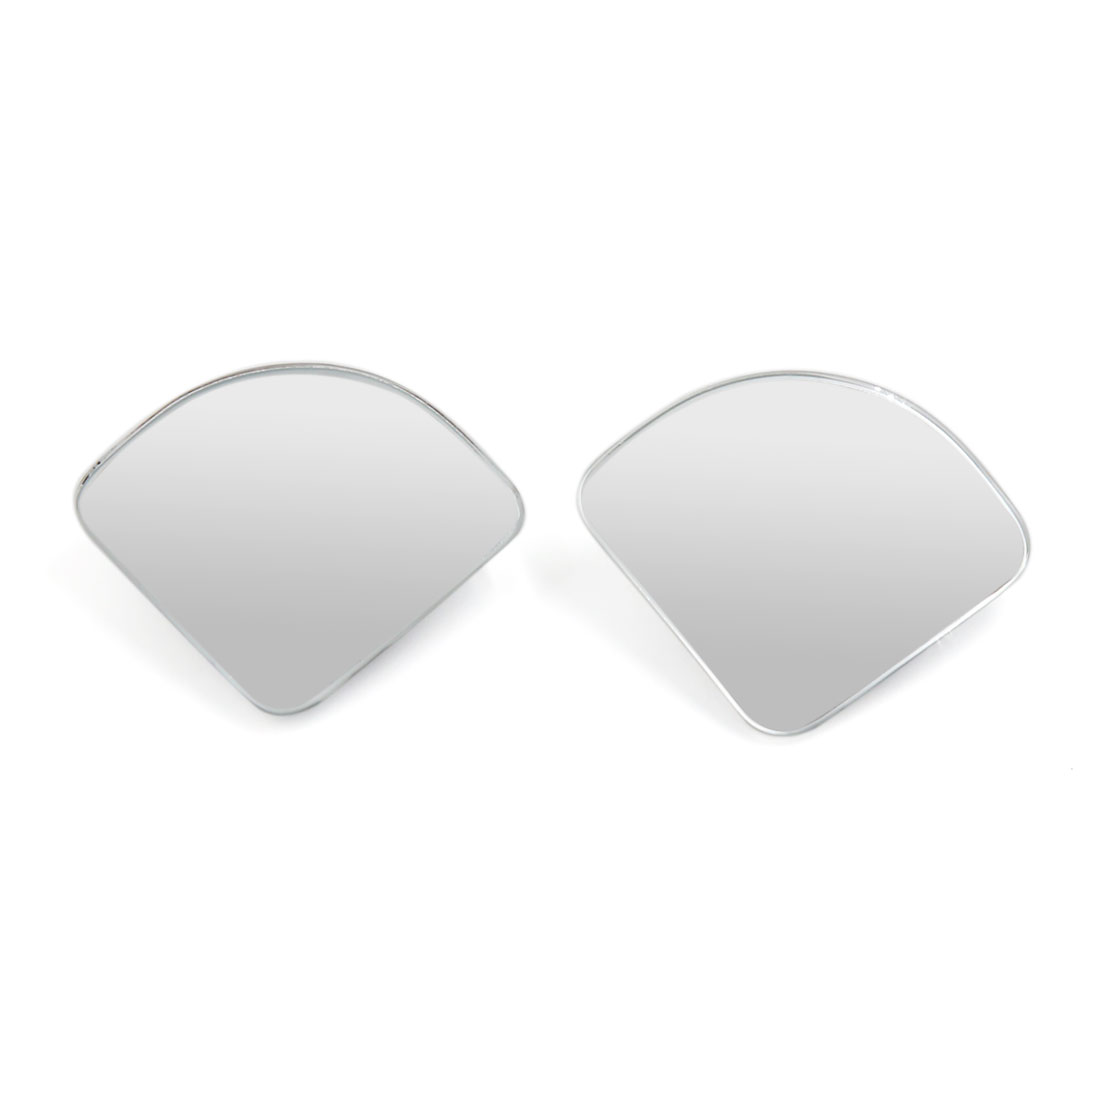 Universal 360 Degree Adjustable Sectorial Shaped Rear View Blind Spot Mirror 2pcs for Car